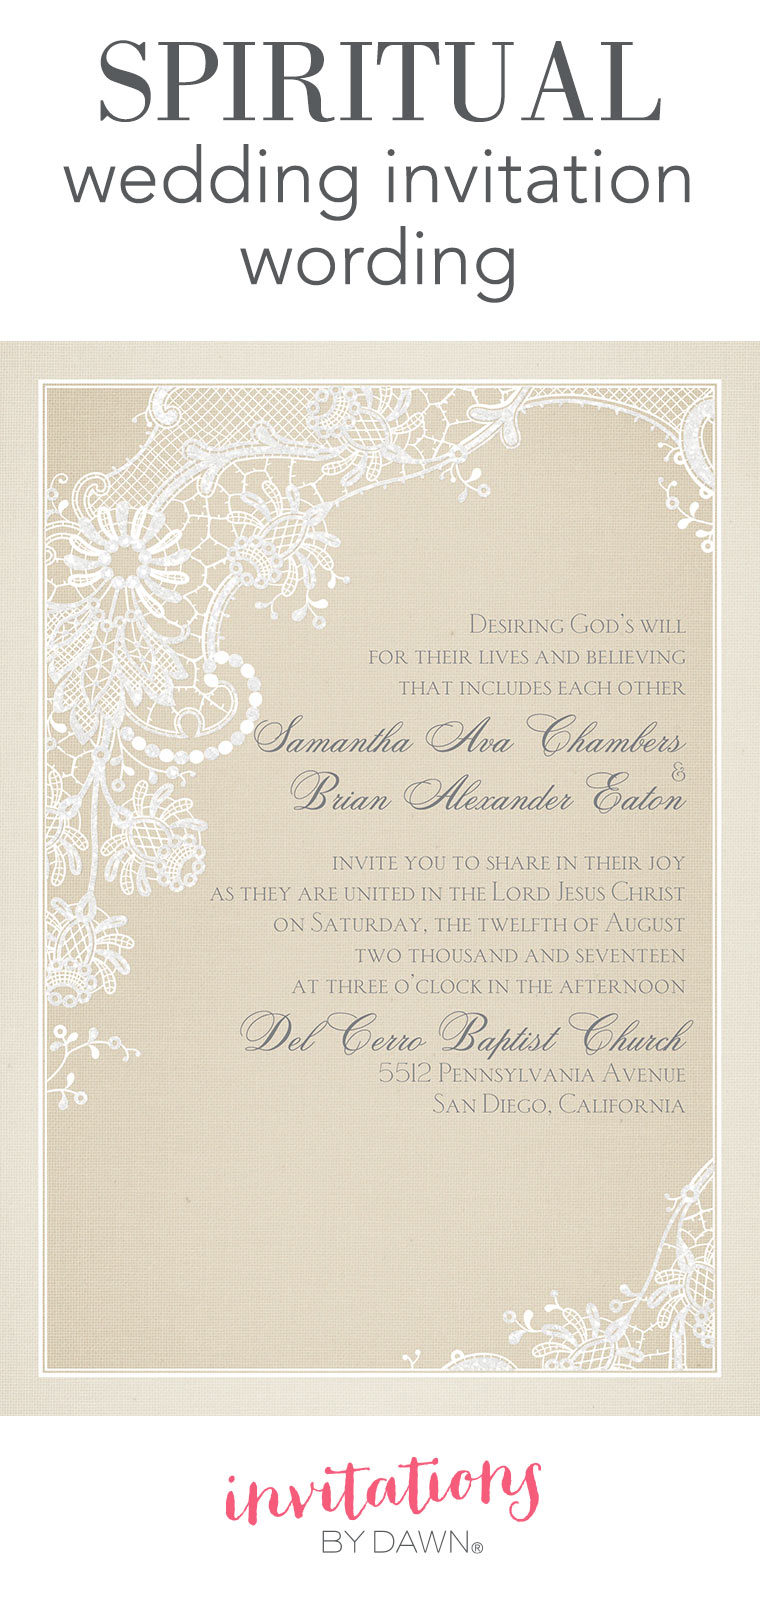 Spiritual Wedding Invitation Wording Invitations By Dawn